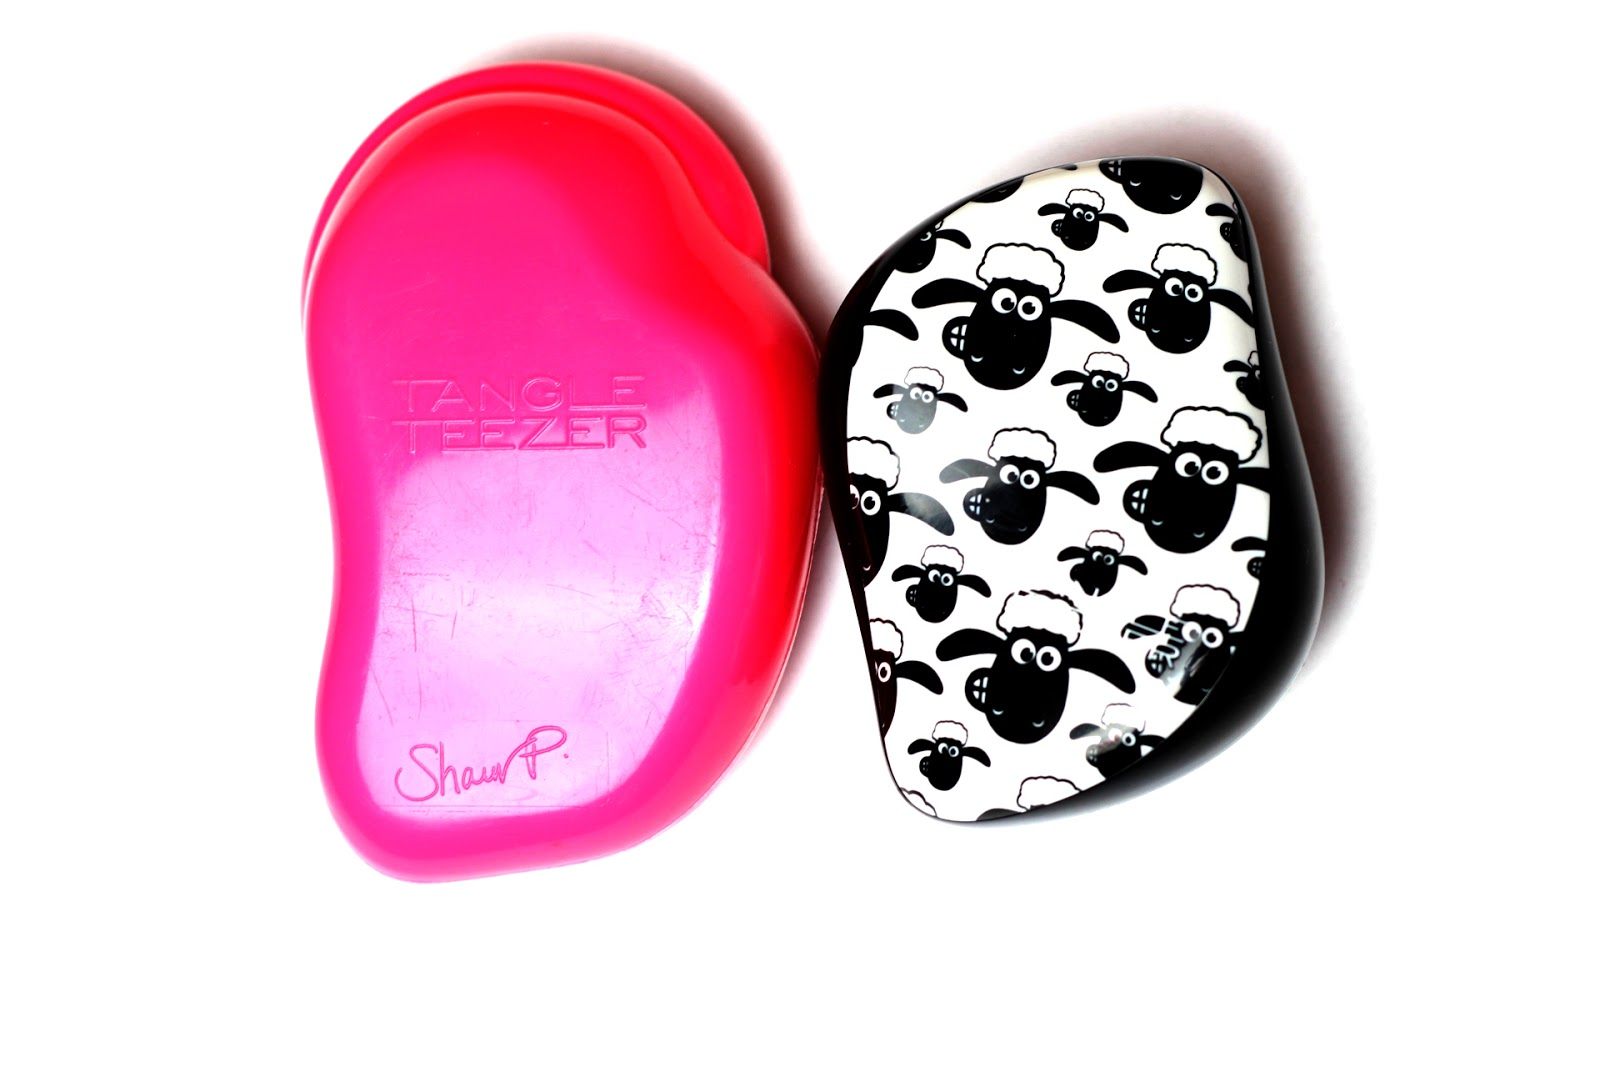 Size Difference between original and compact tangel teezer